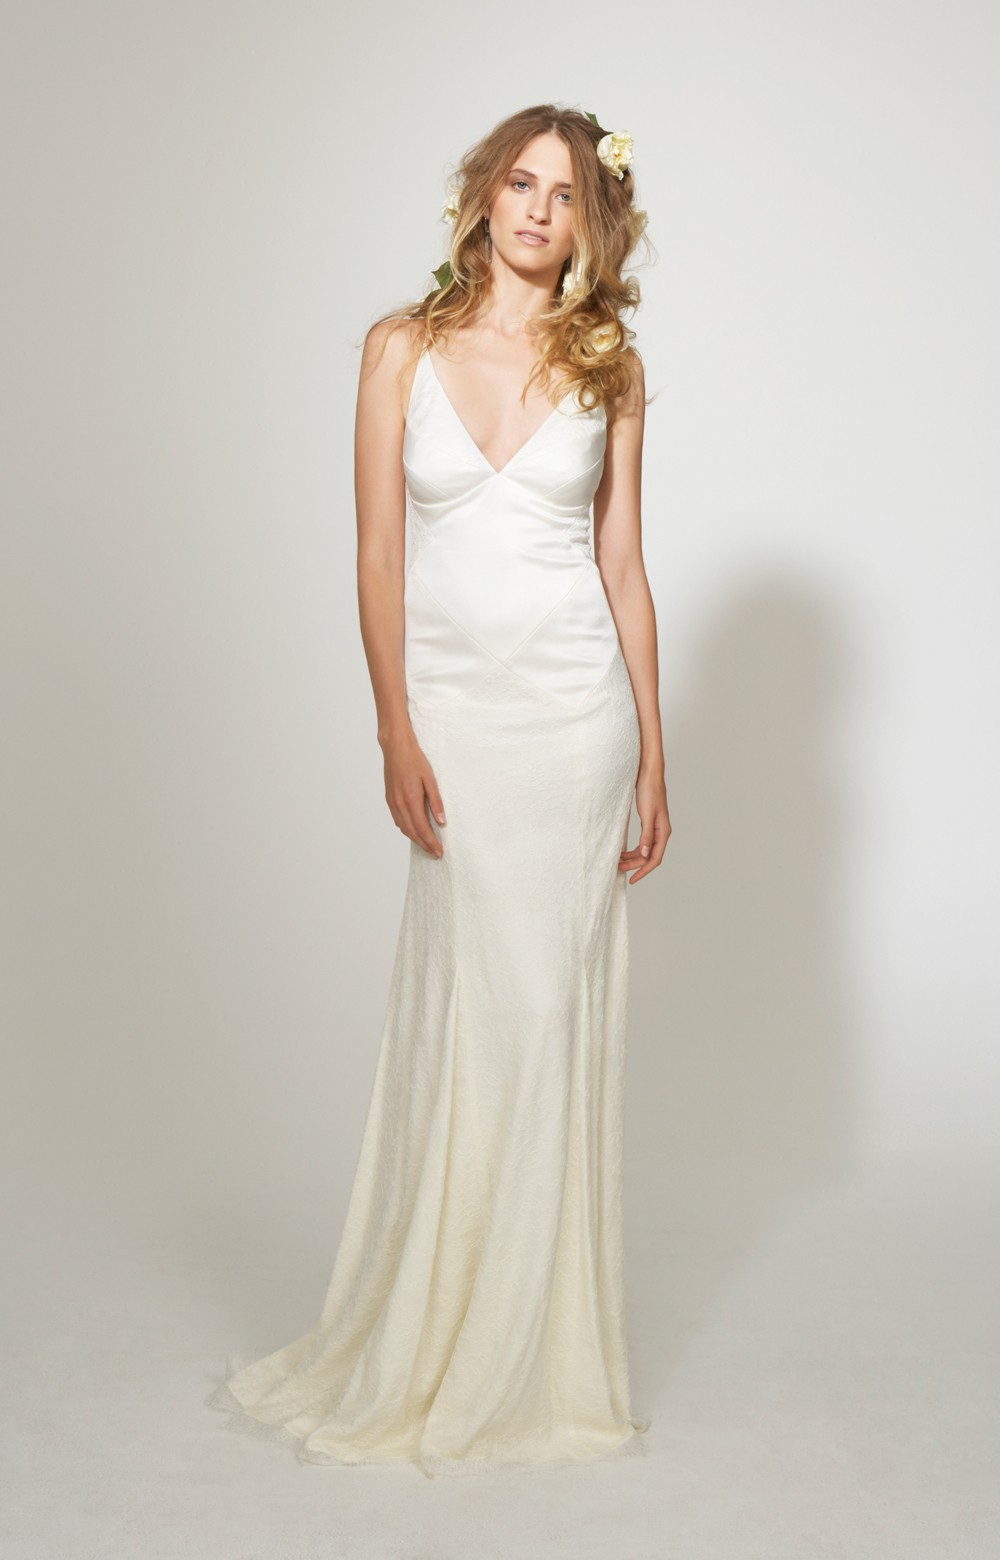 Lyst nicole miller marlena bridal gown in white for Nicole miller dresses wedding